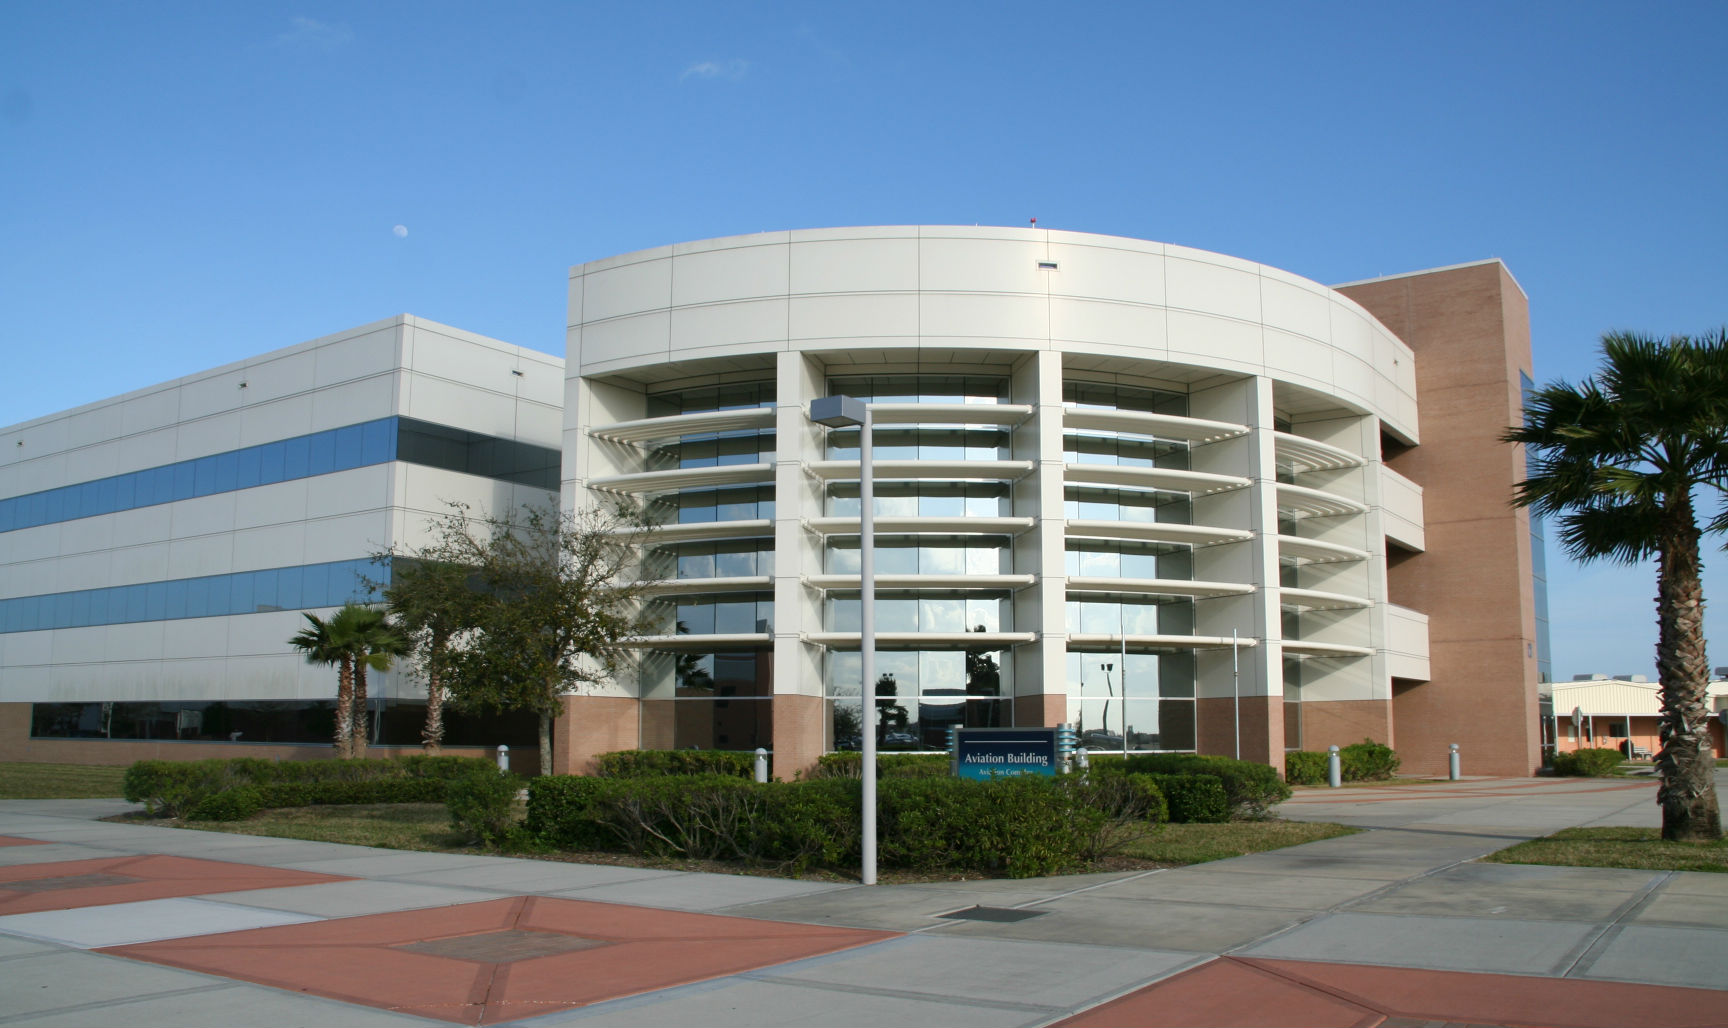 Embry- Riddle Aeronautical University-Daytona Beach